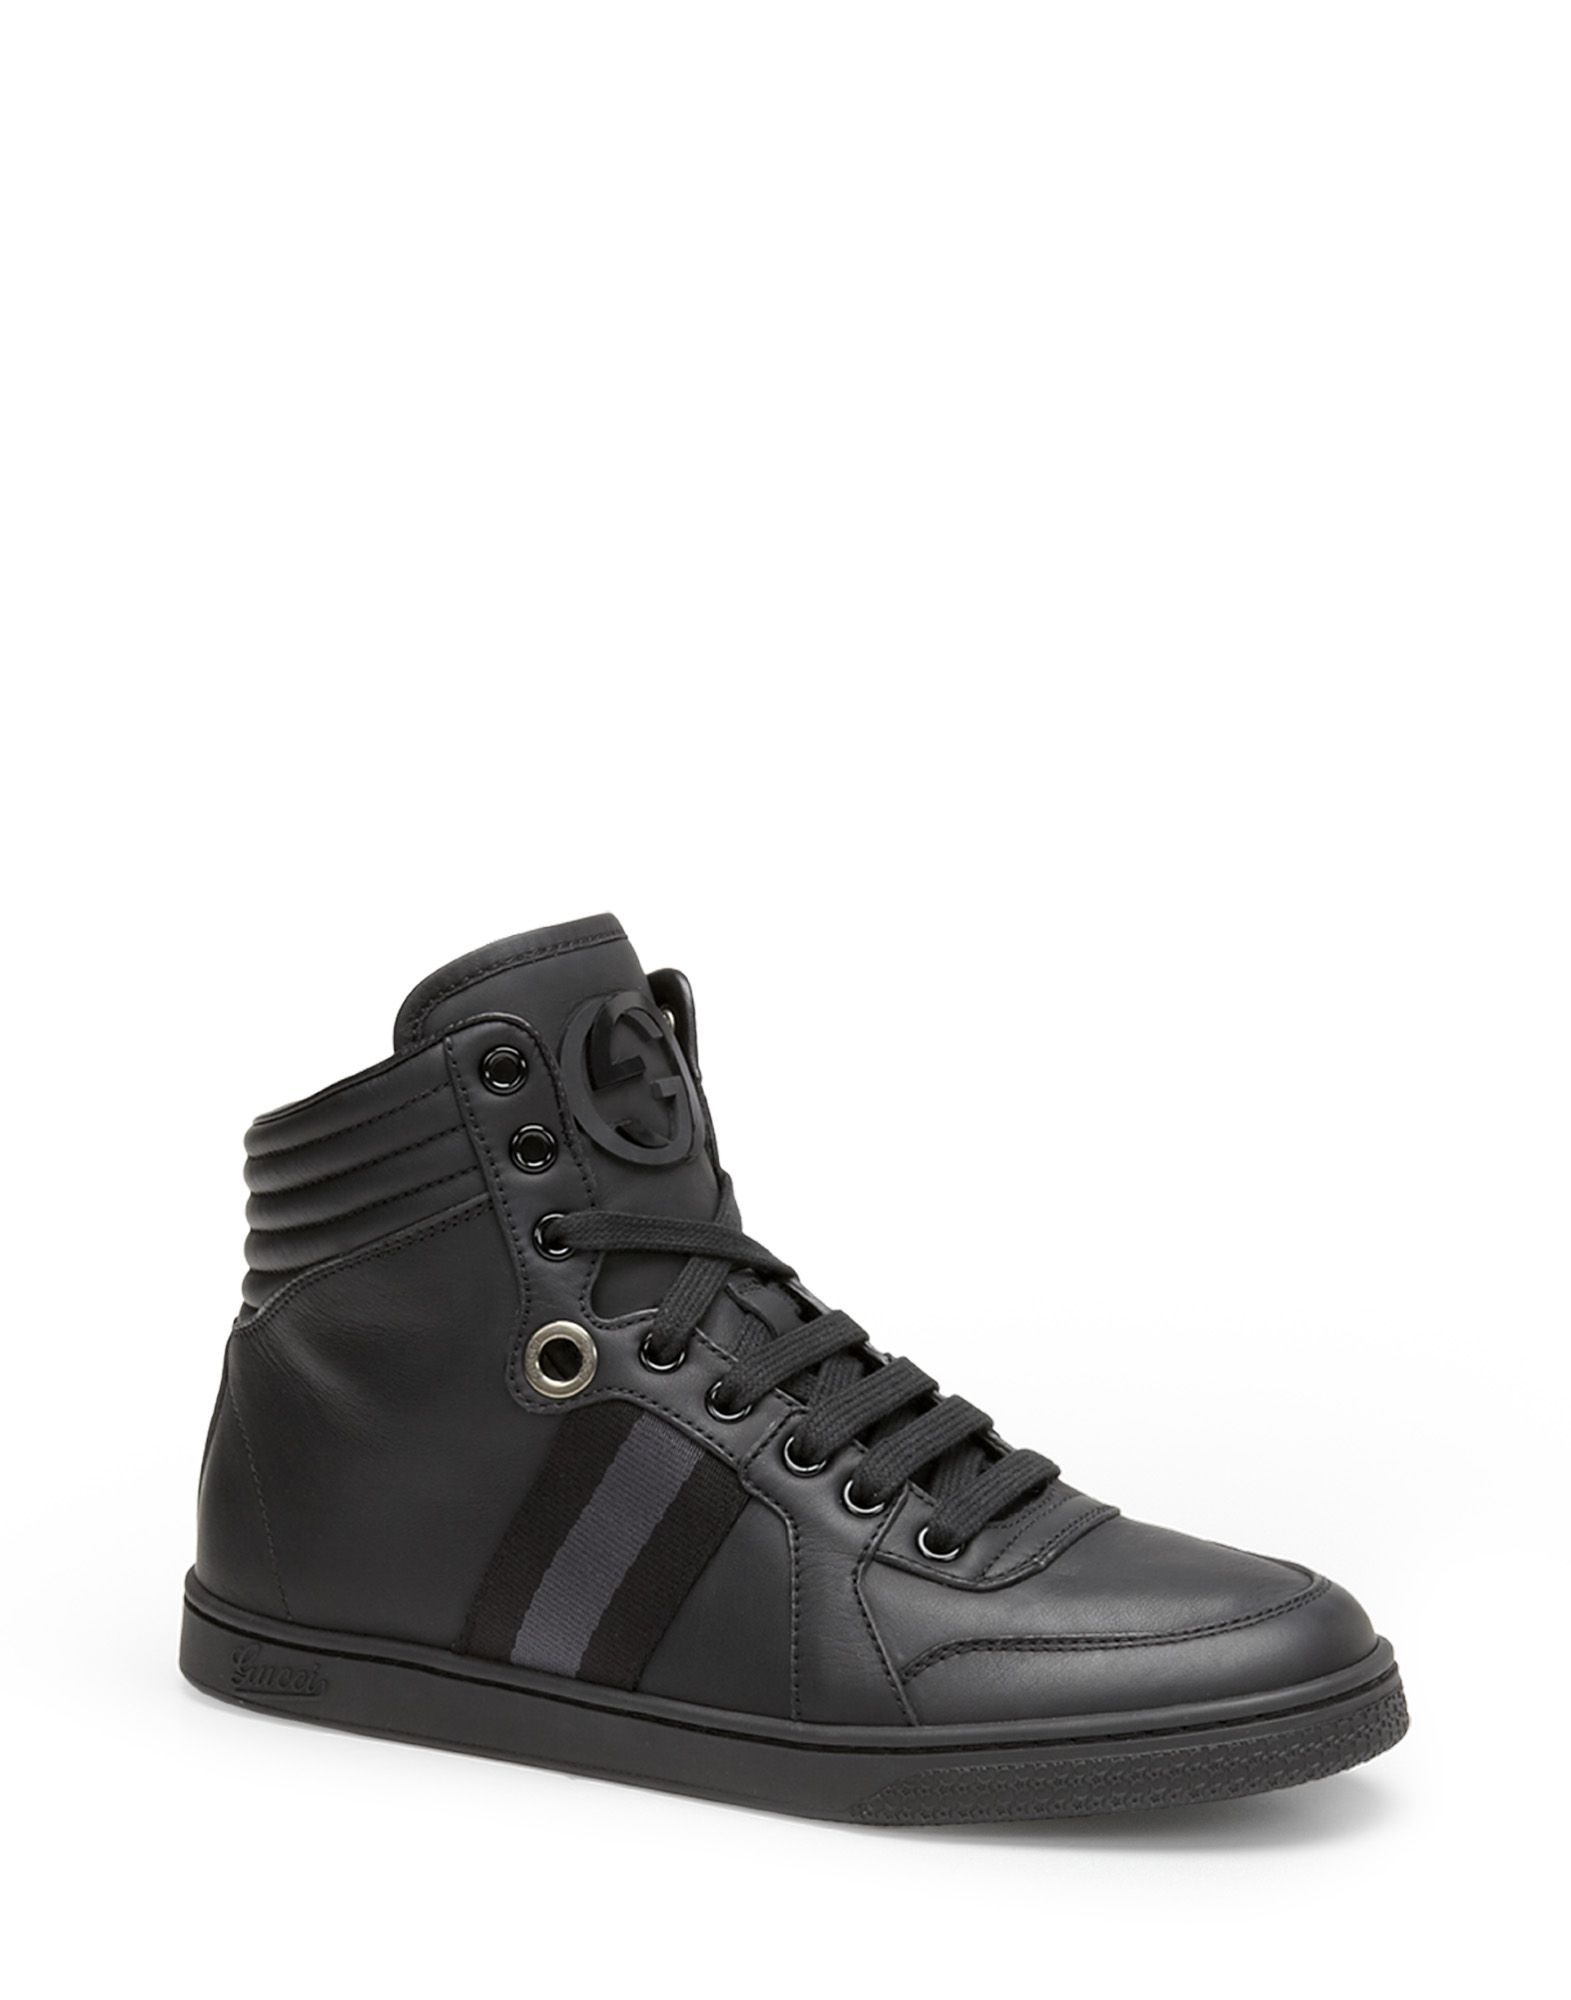 gucci high top sneakers in black lyst. Black Bedroom Furniture Sets. Home Design Ideas